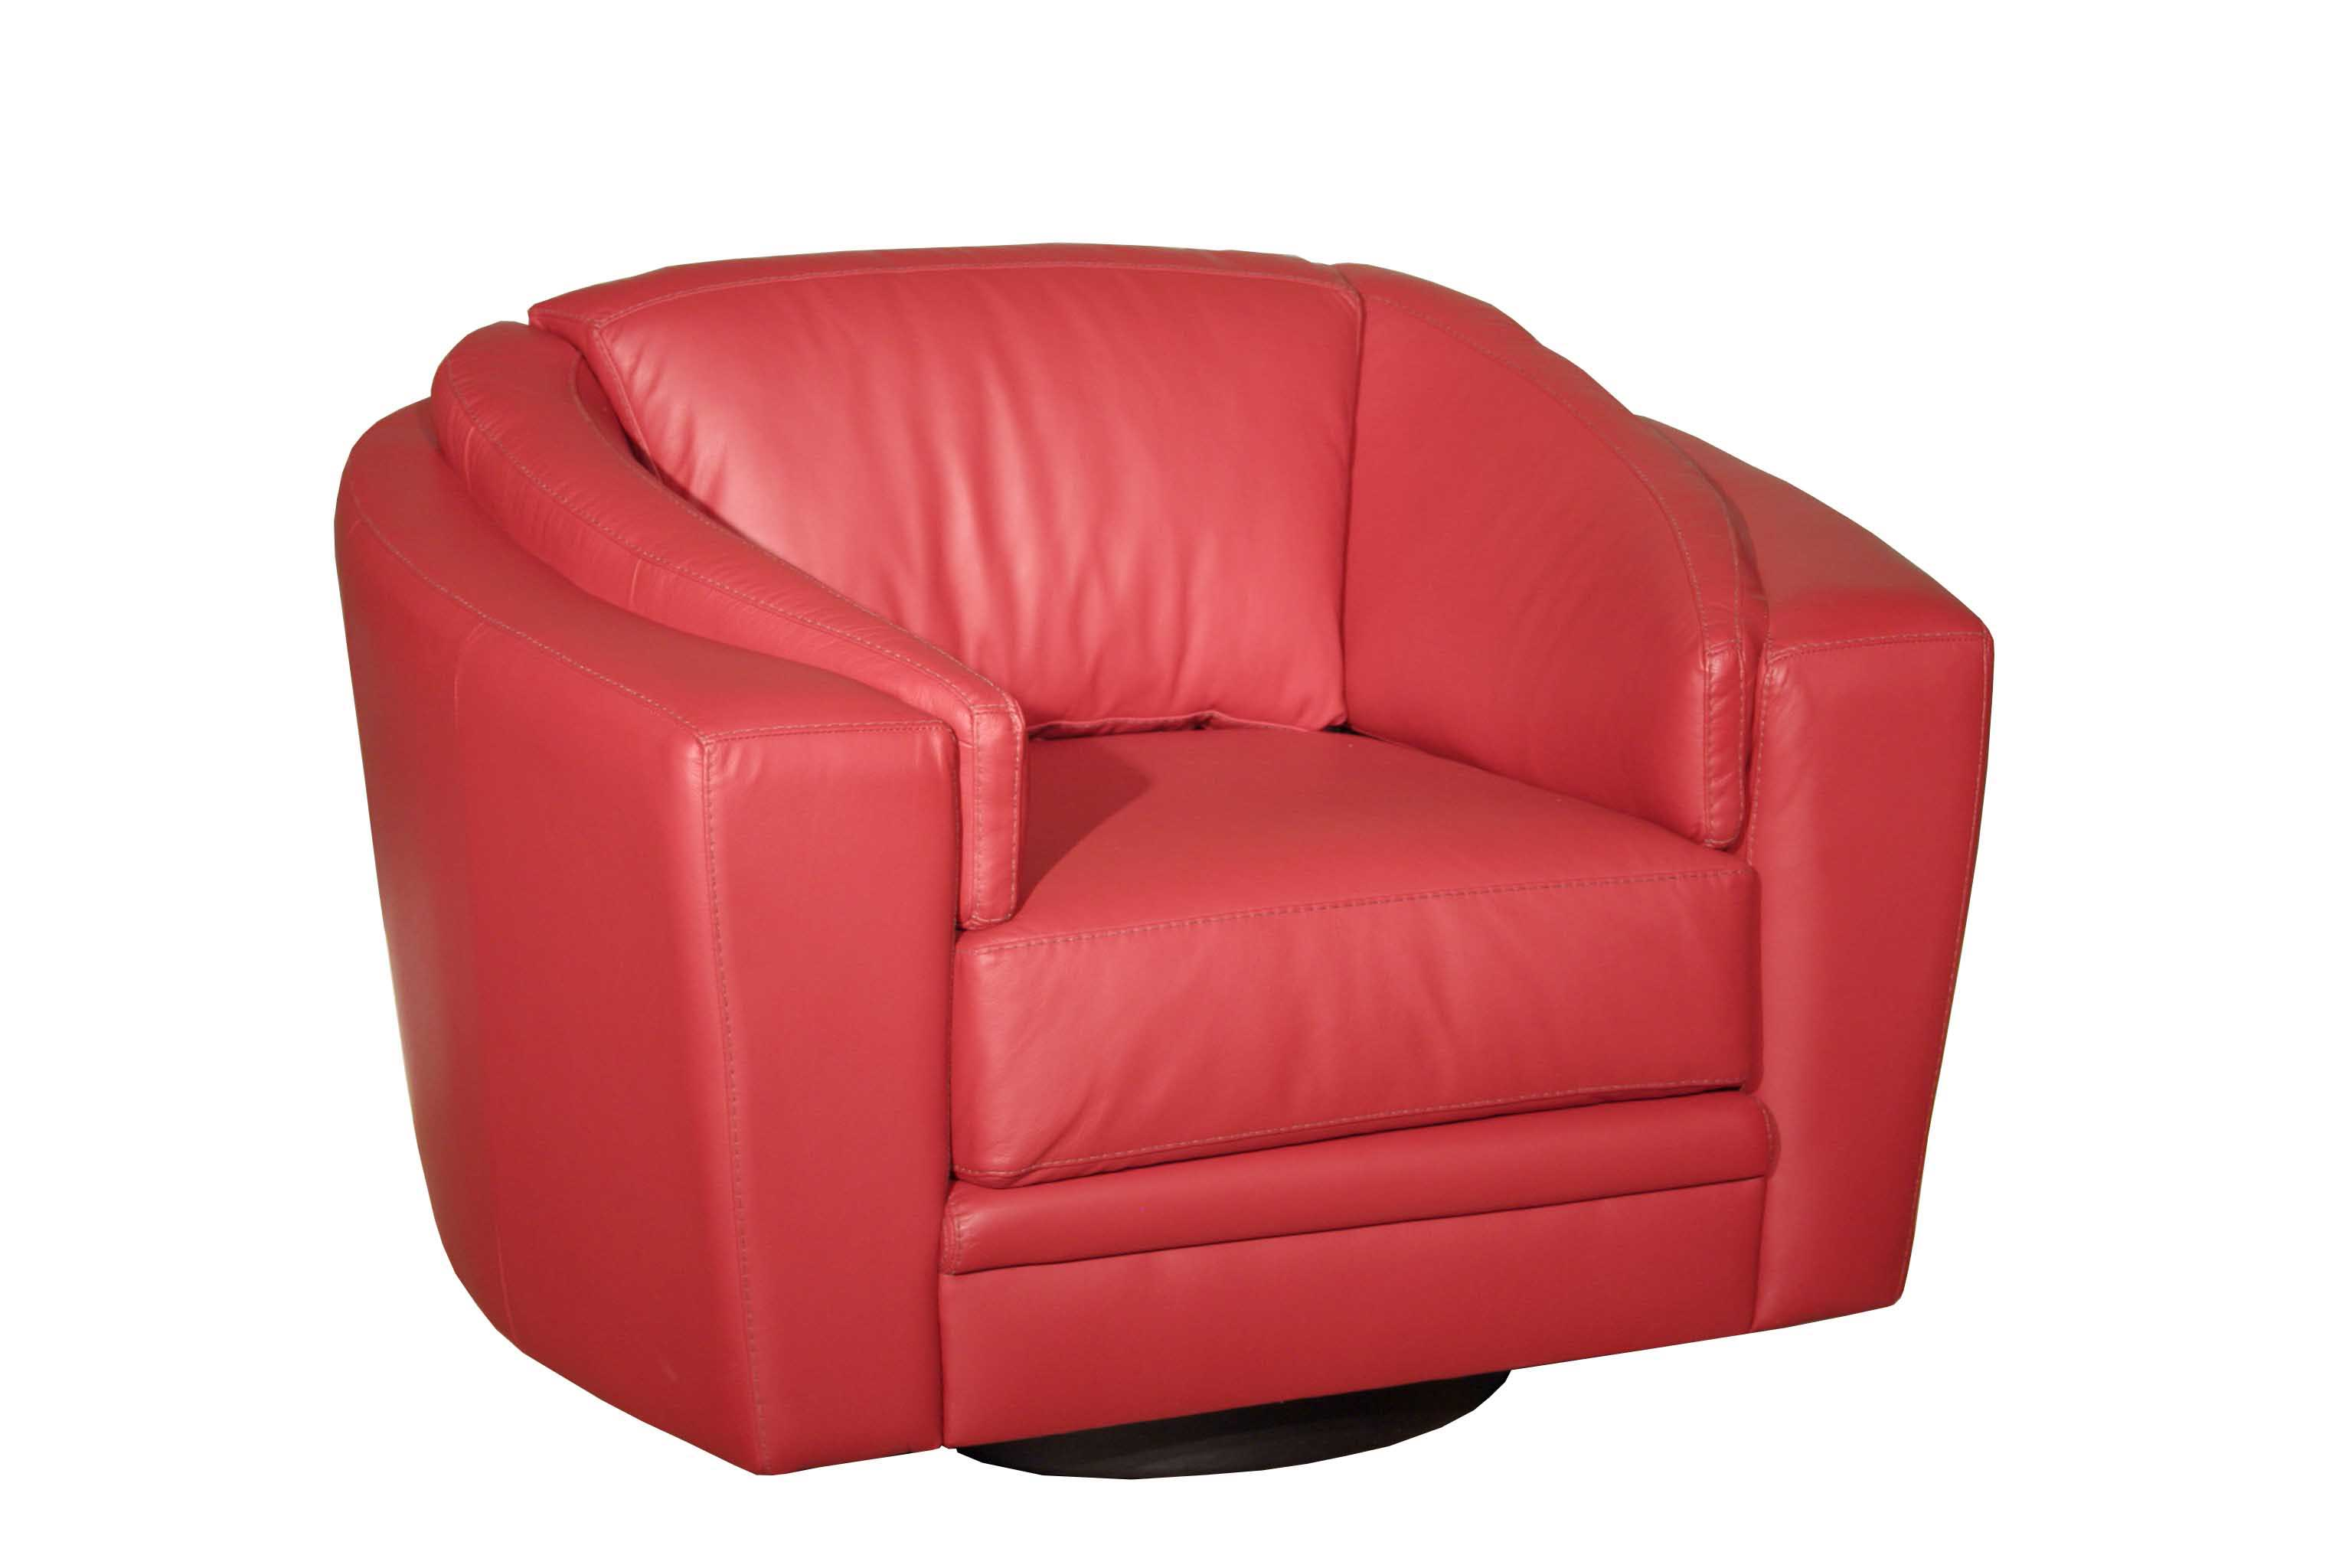 Fiona Swivel Chair from Red Leather